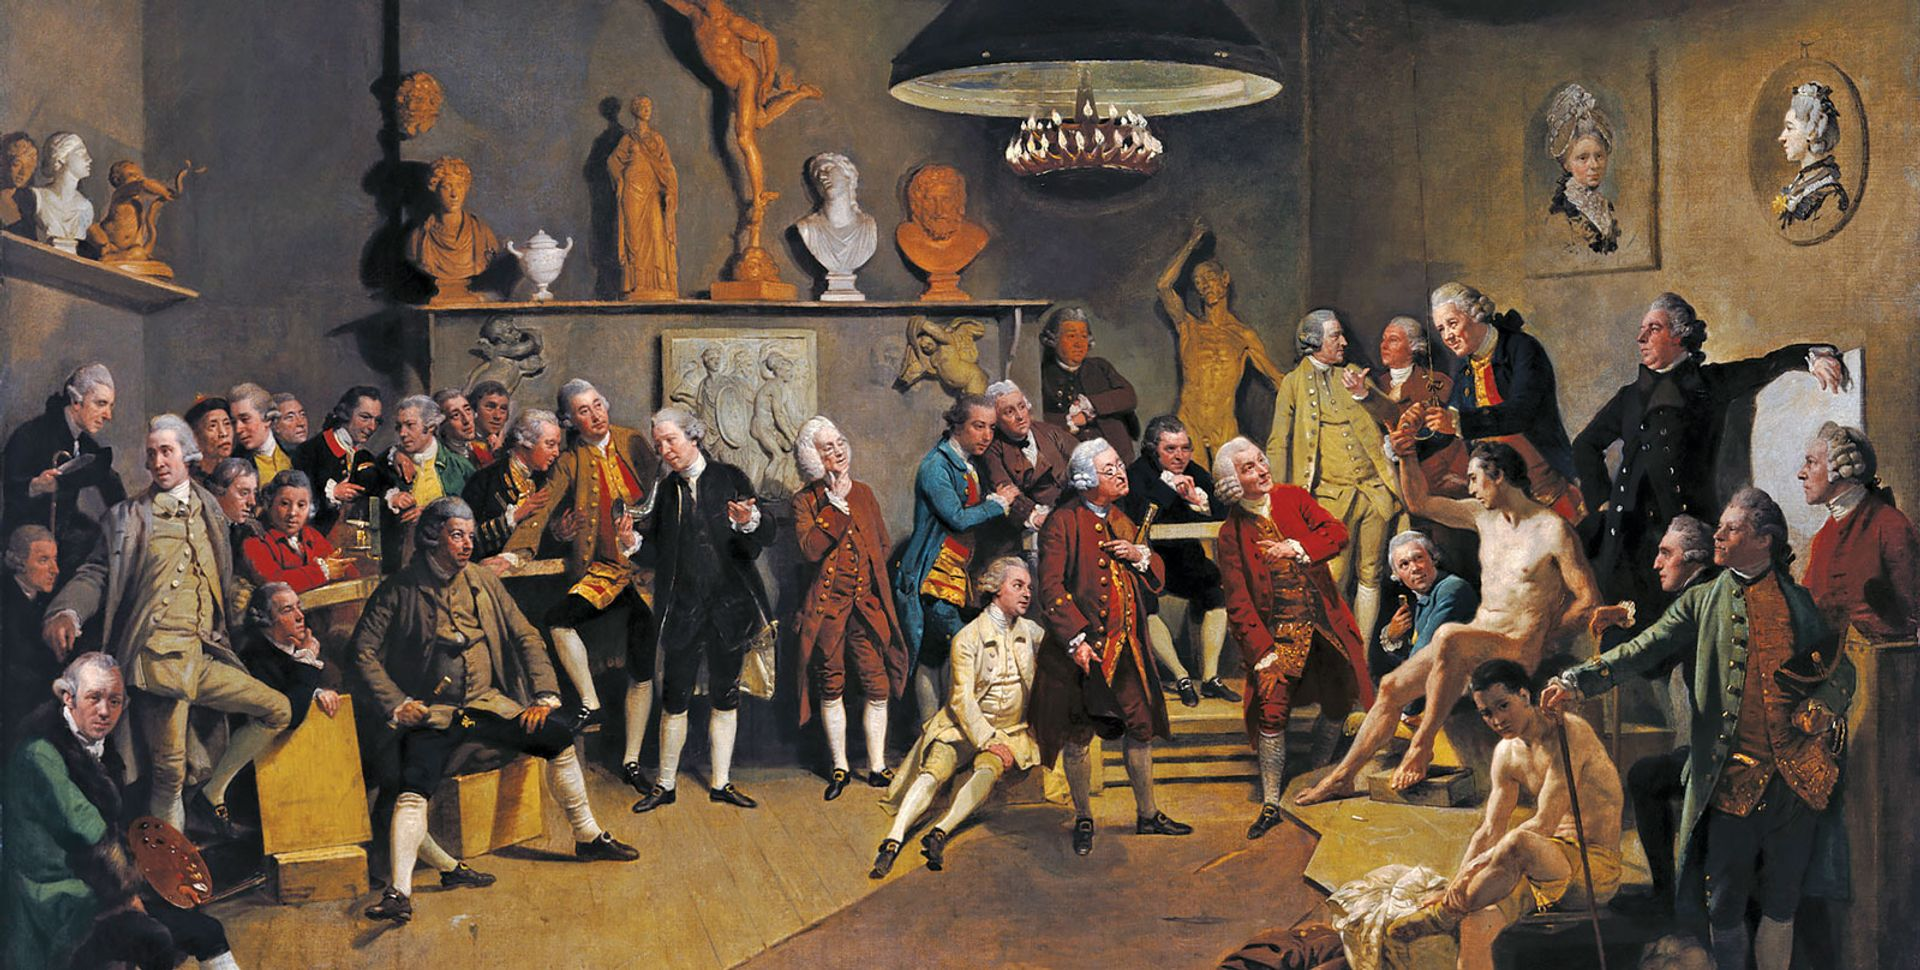 Zoffany's painting depicts the RA's 34 founders taking a life class, but the two female members are present only as portraits on the wall The Royal Collection, London